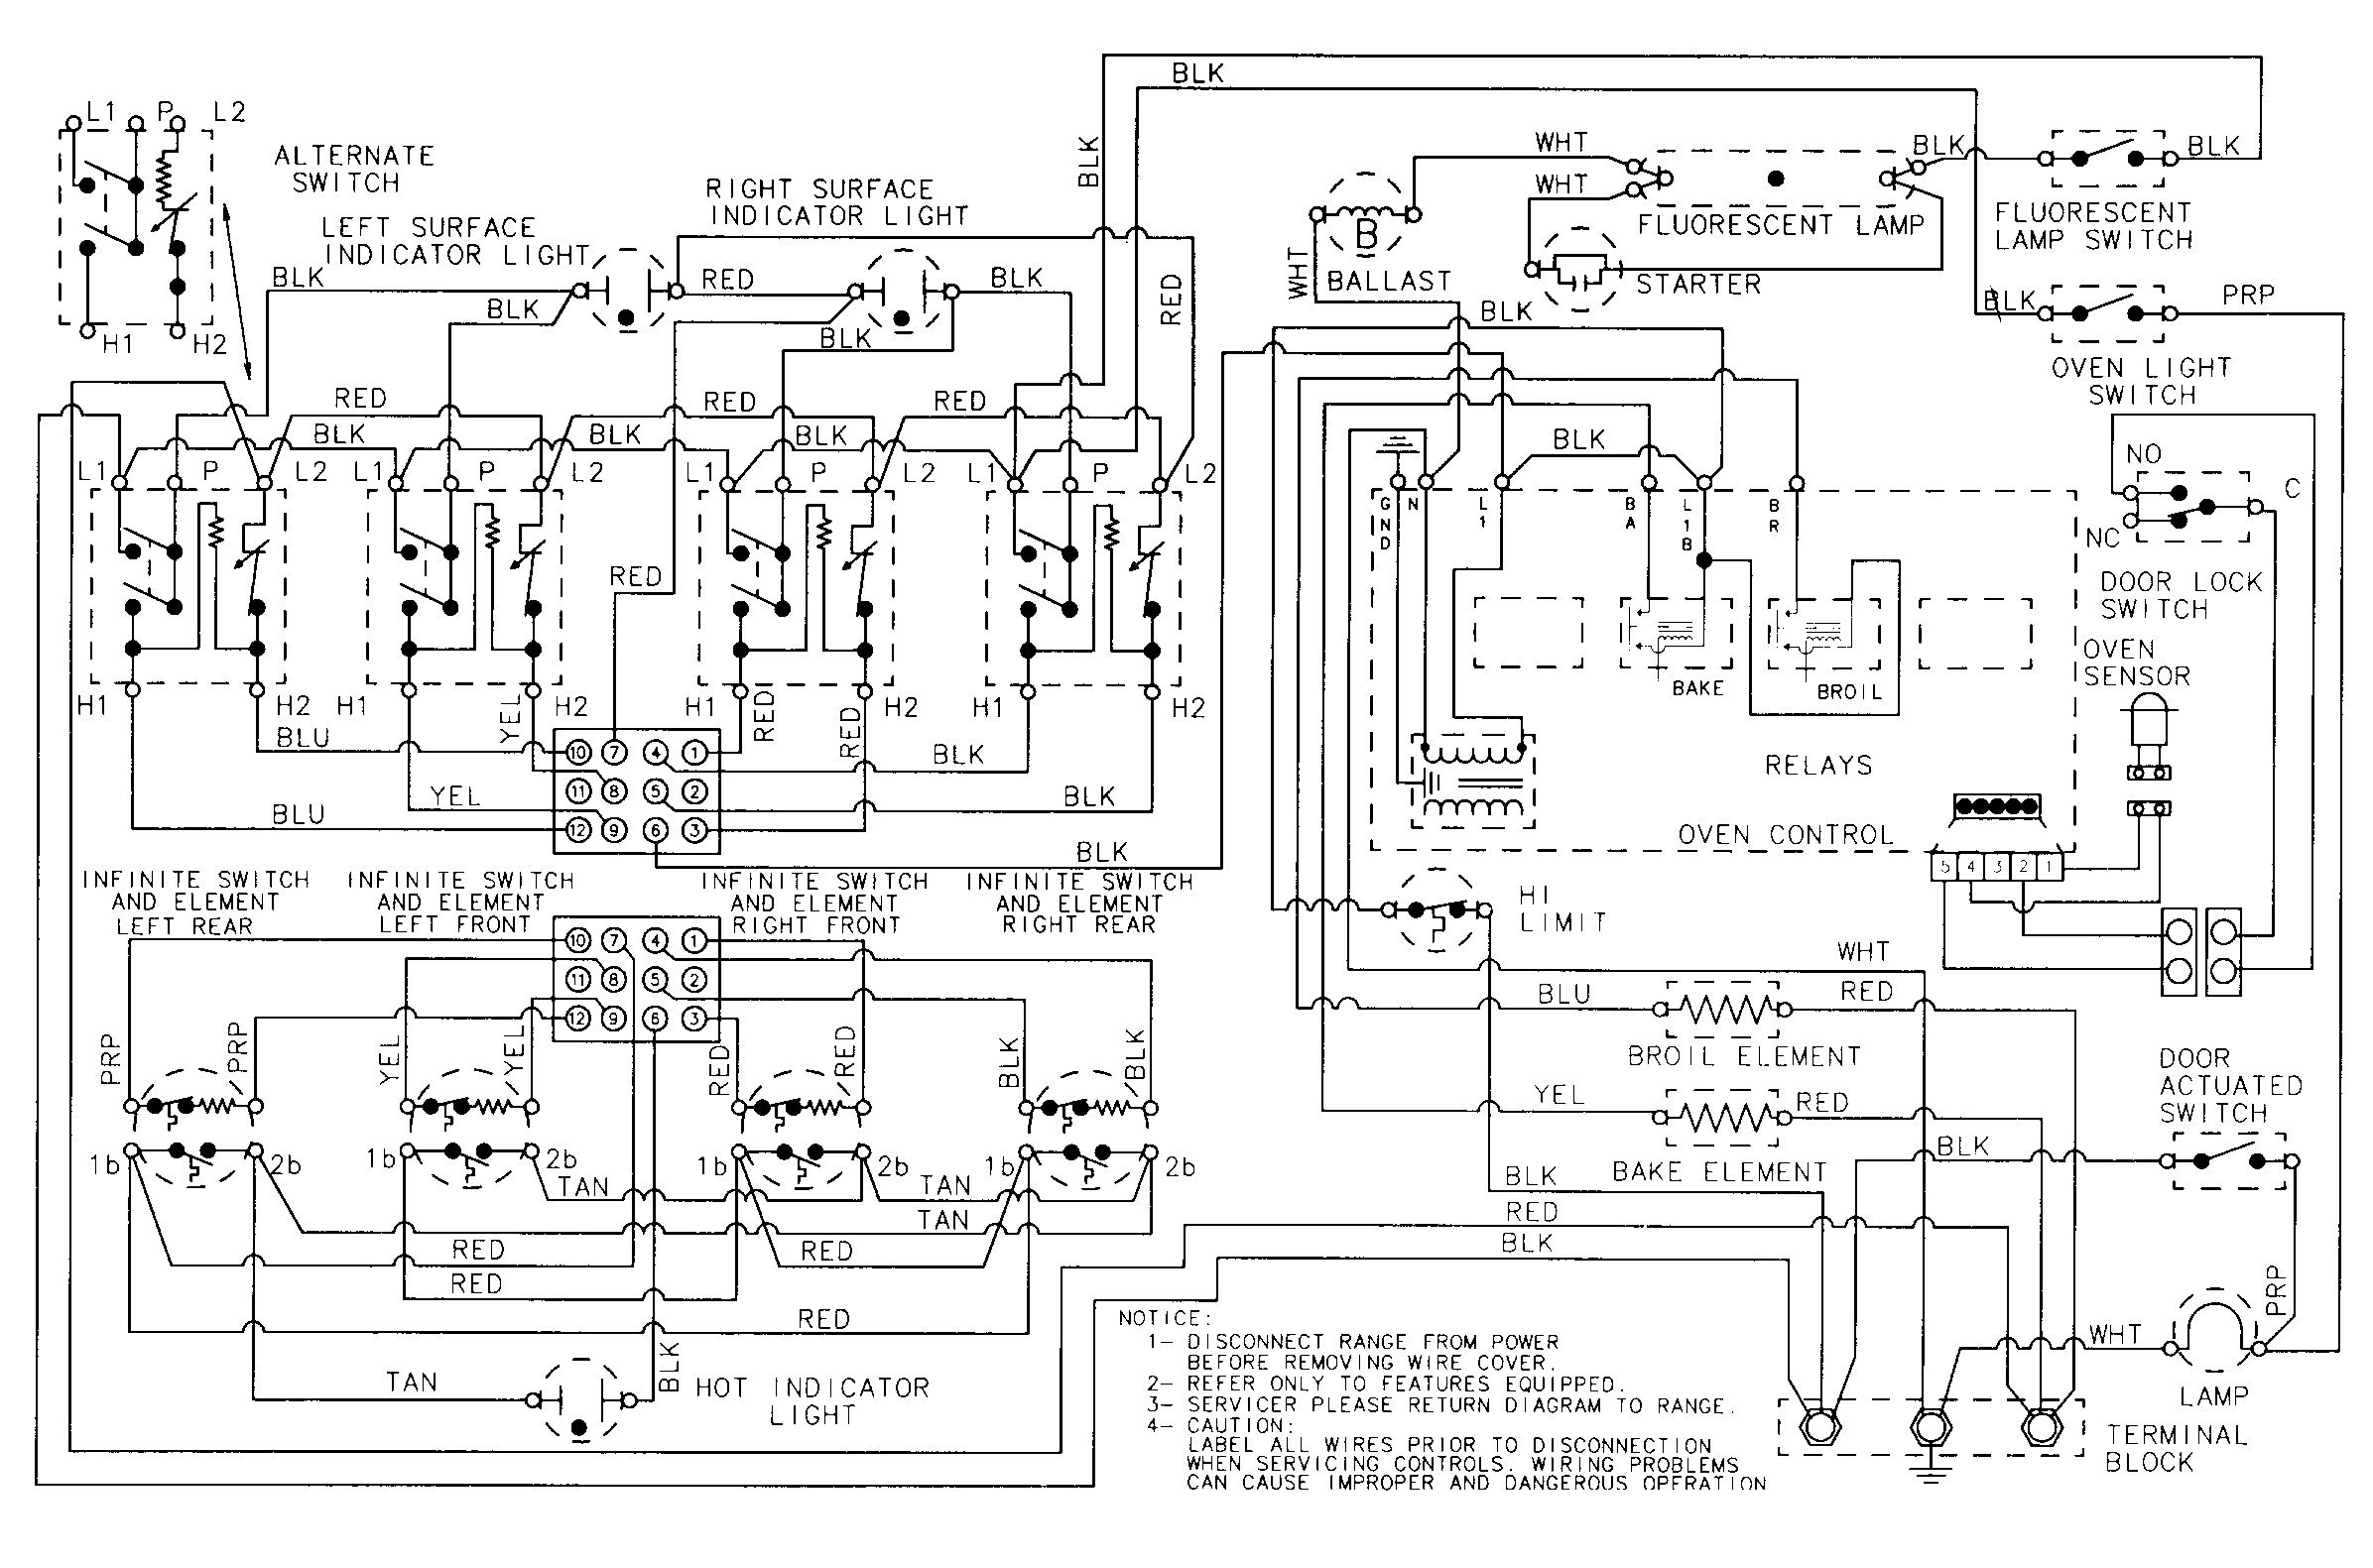 240v Stove Wiring Diagram Illustration Of Electric Baseboard Heat Wiring Diagram Electrical Diy Awesome Image Rh Mainetreasurechest Com Electric Baseboard Heater